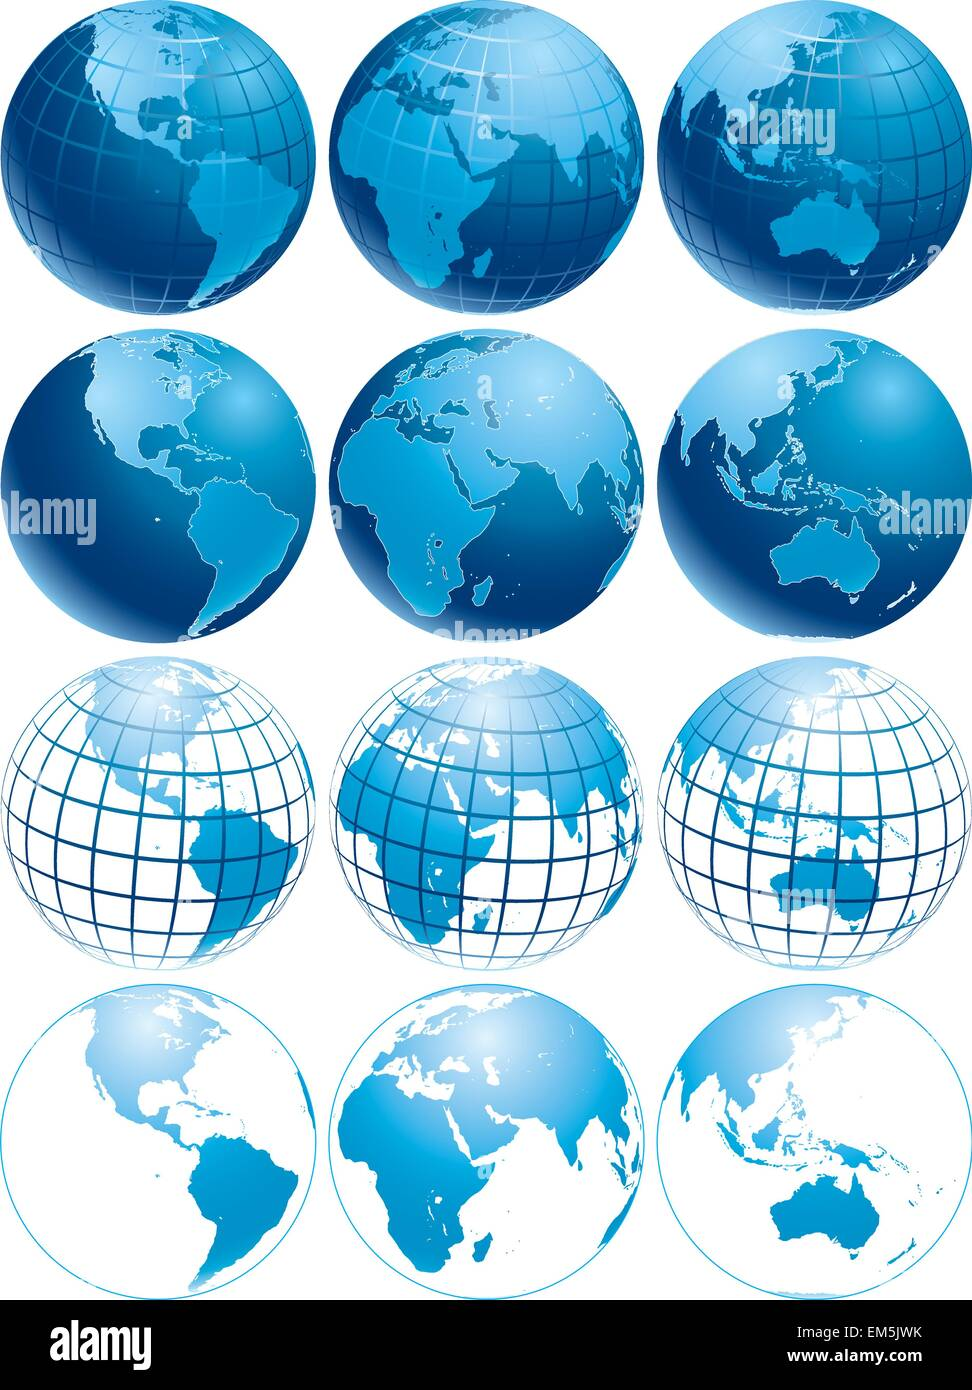 Vector illustration of three different shiny blue Earth globes with different appearance - Stock Image